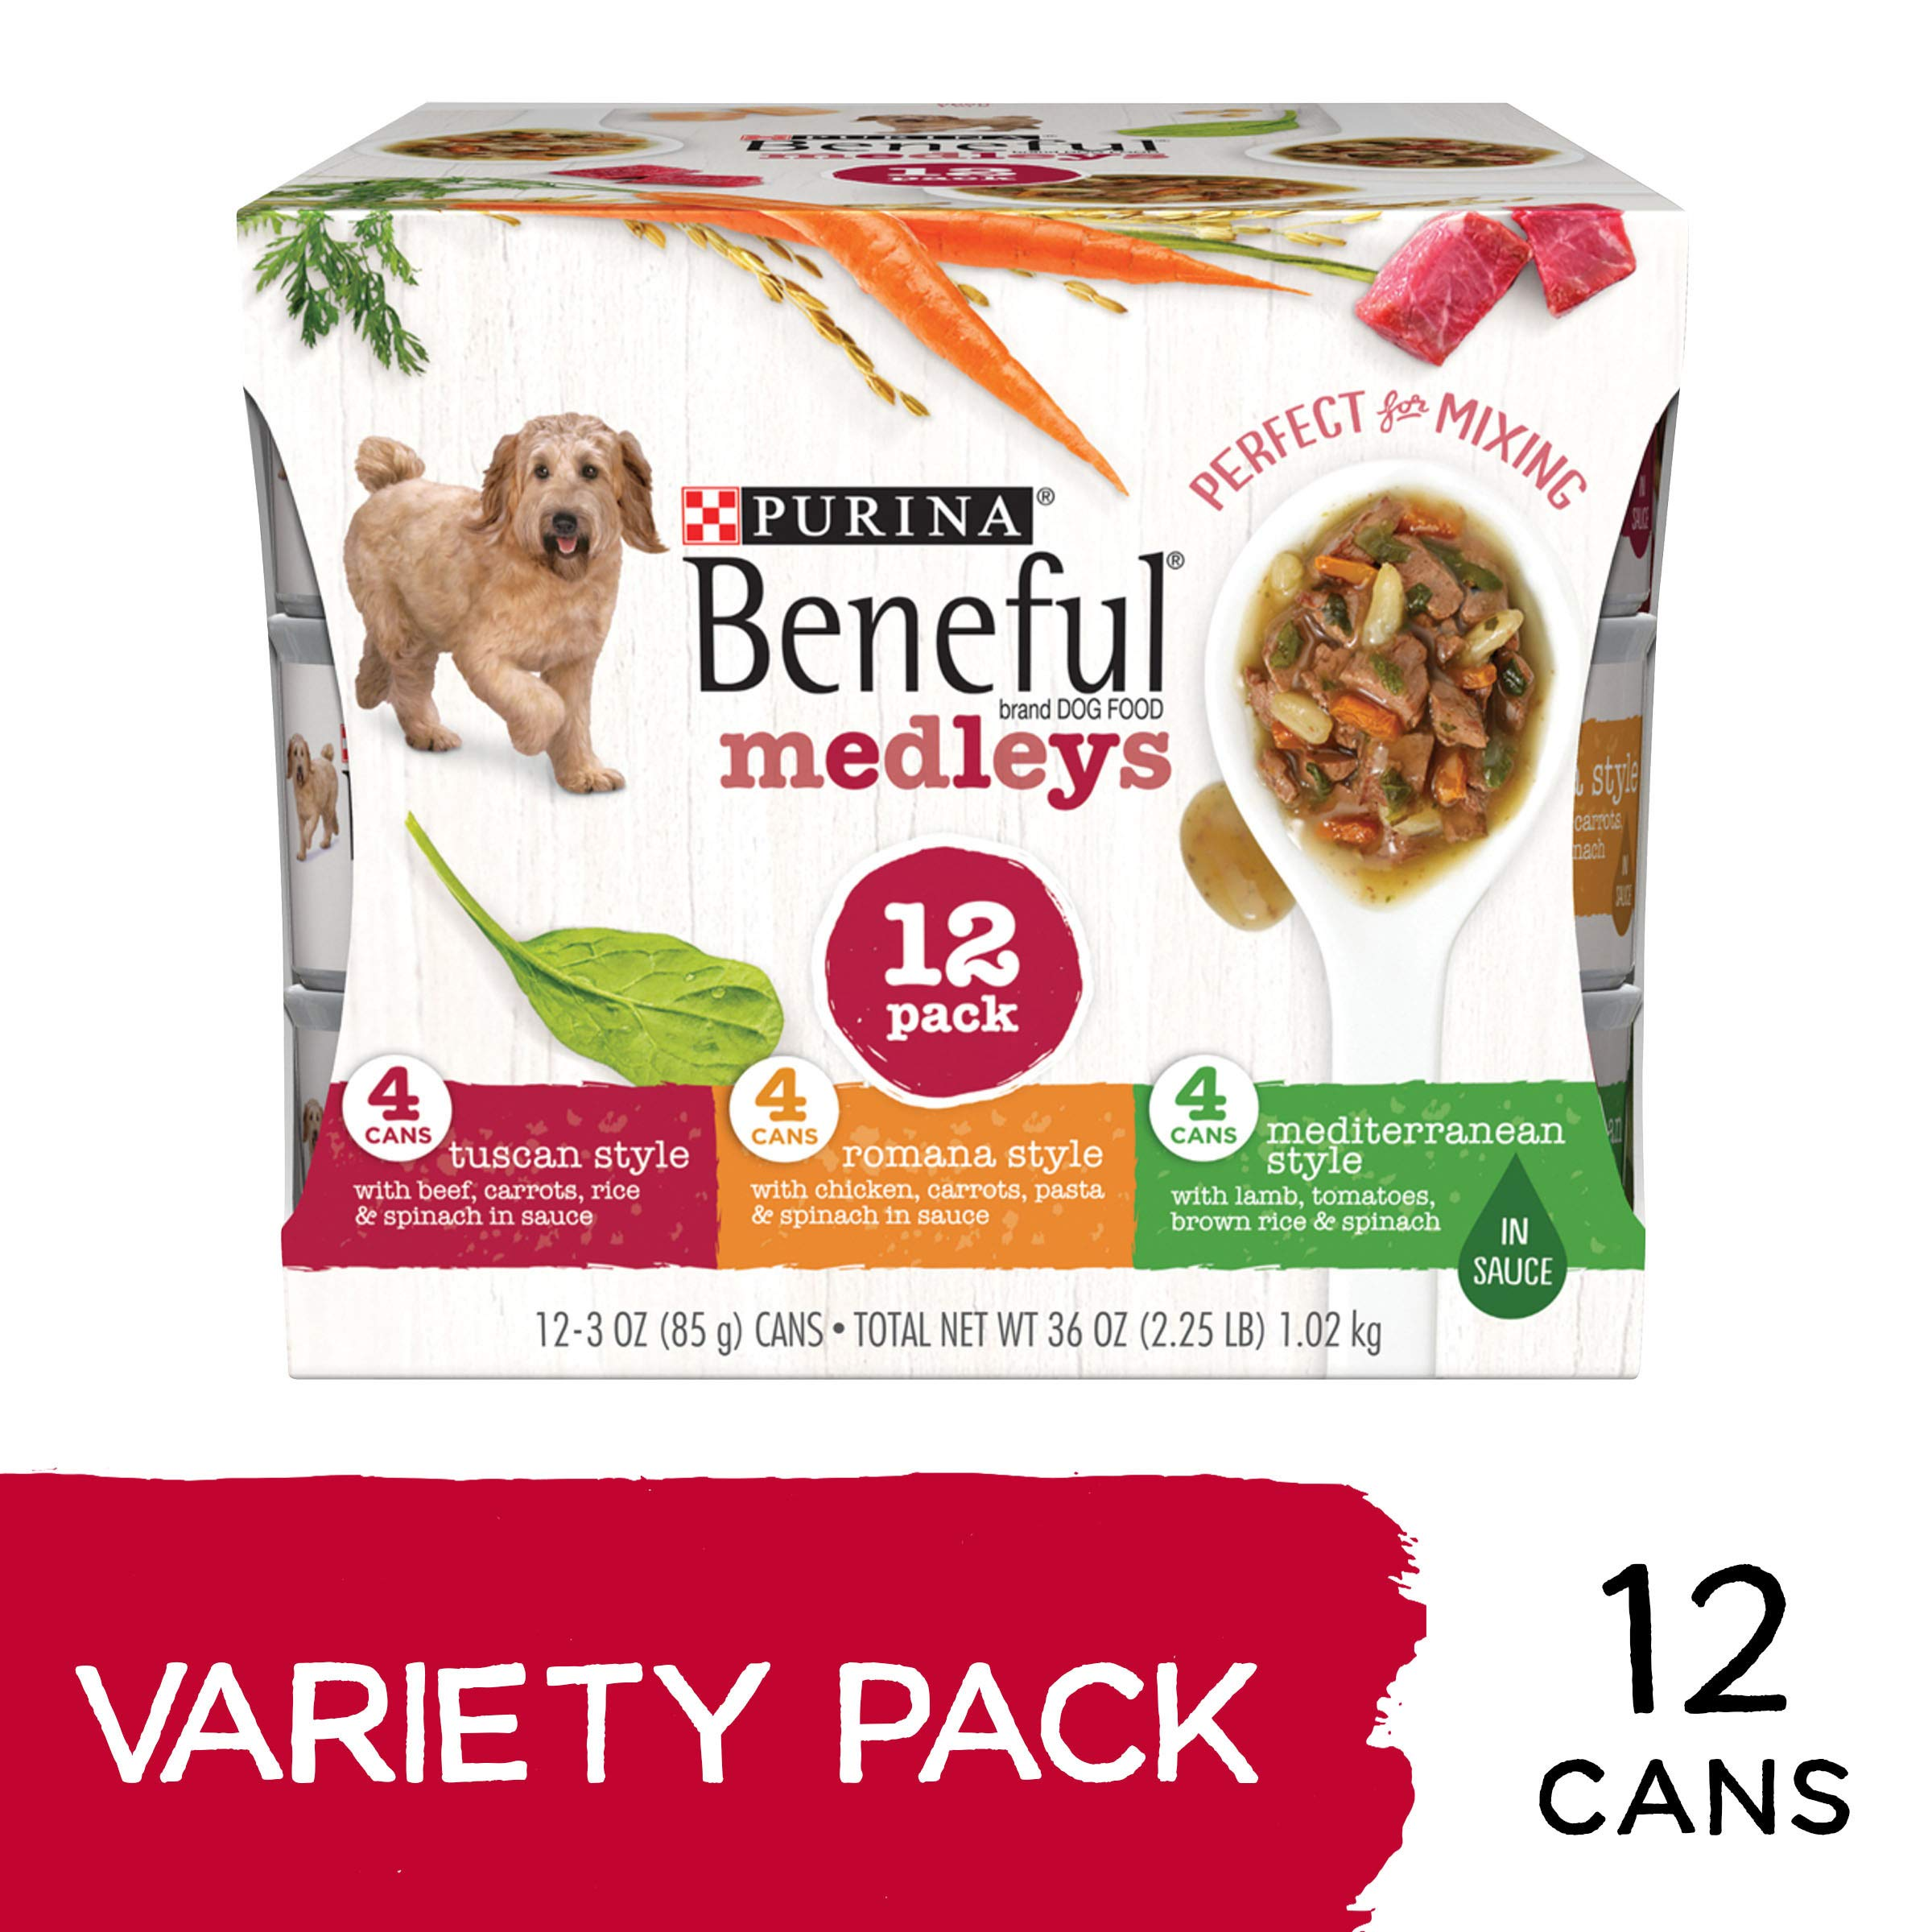 Purina Beneful Wet Dog Food Variety Pack, Medleys Tuscan, Romana & Mediterranean Style - (2 Packs of 12) 3 oz. Cans by Purina Beneful